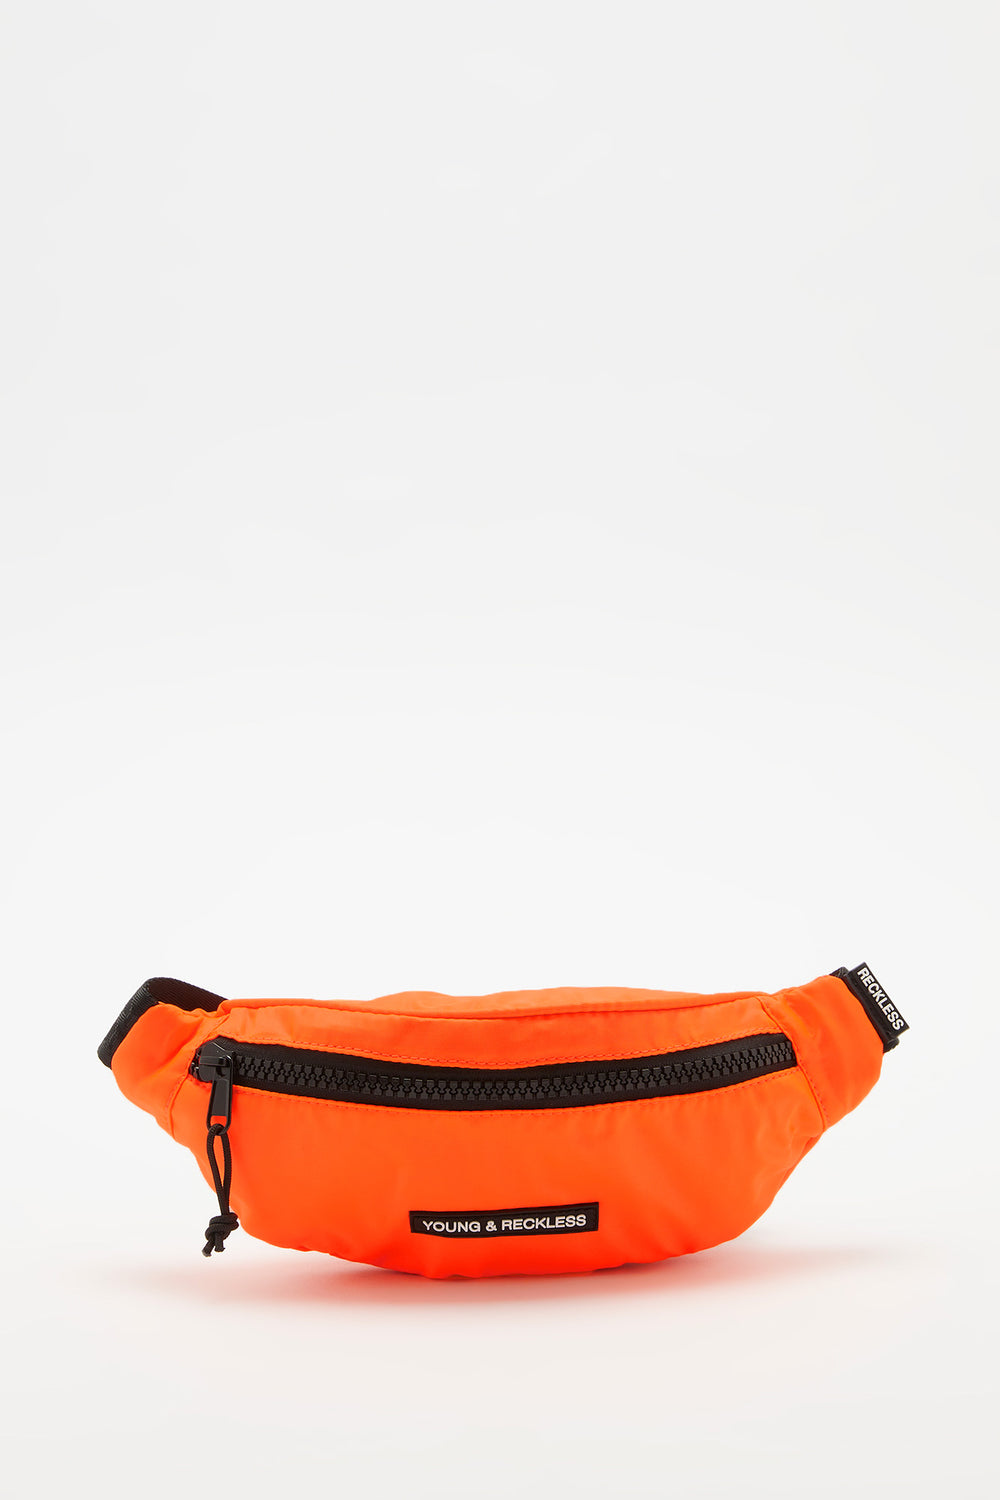 Sac Banane Fluo Young & Reckless Orange